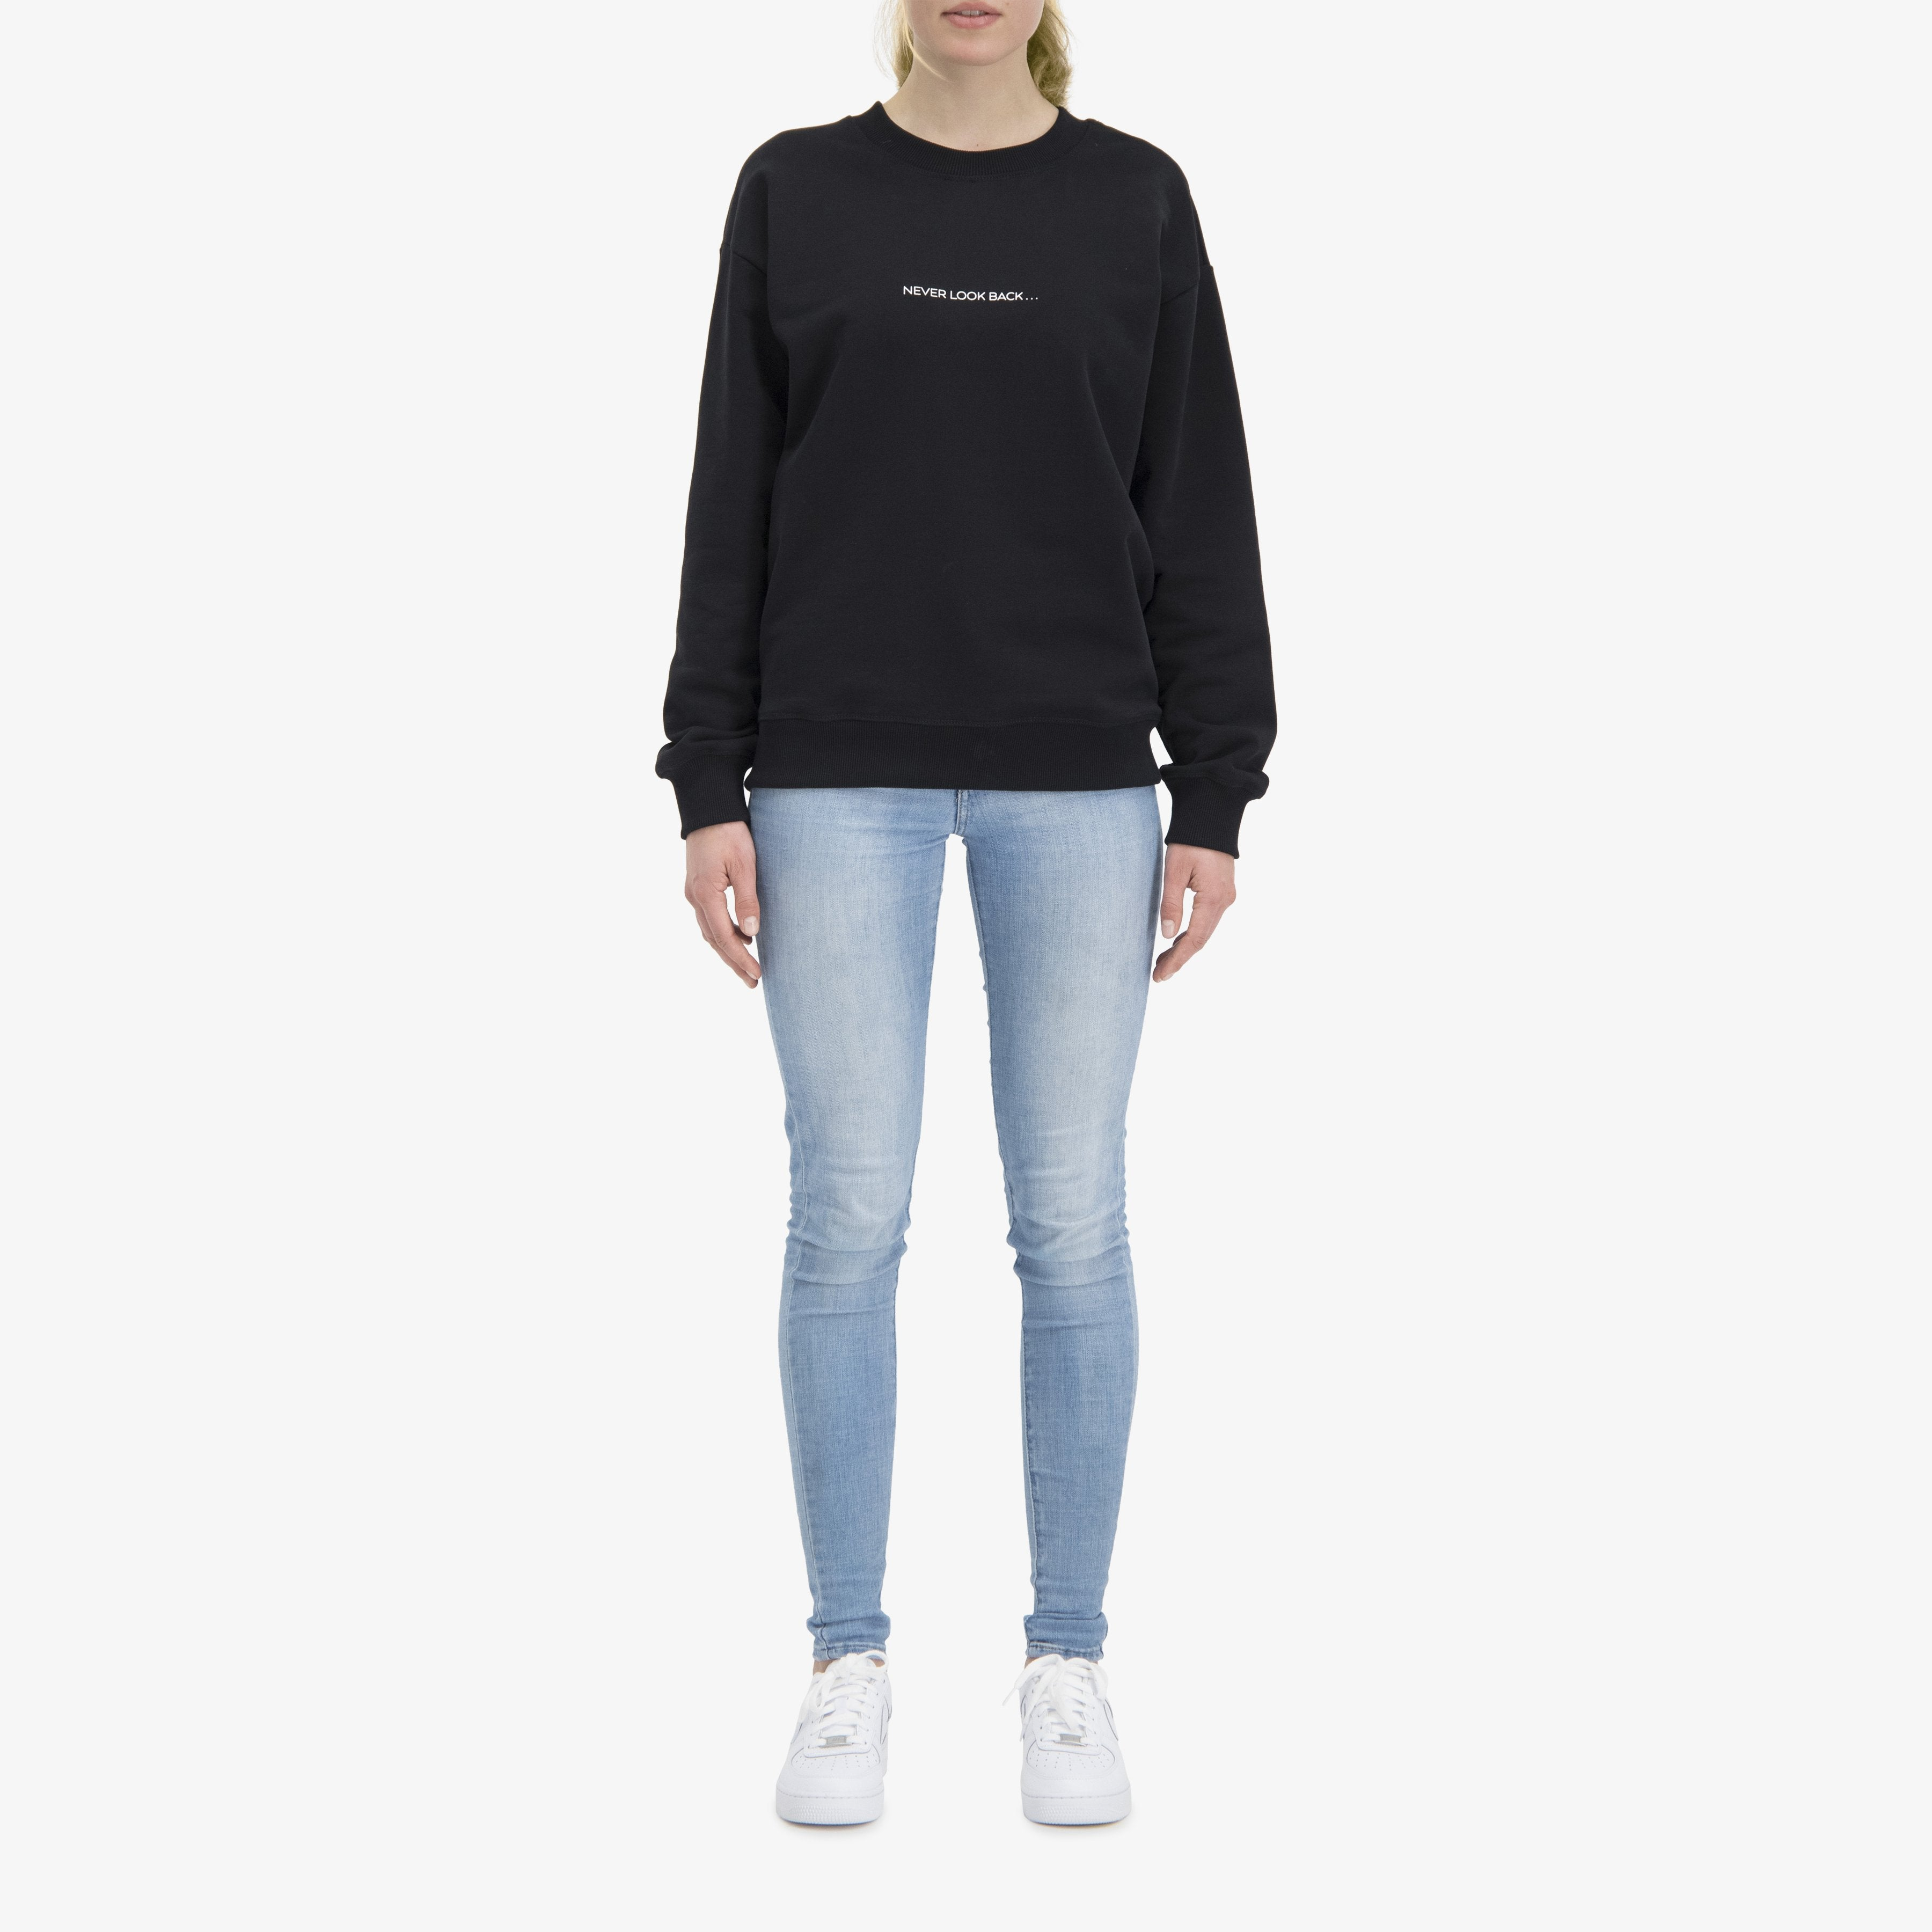 Never Look Back Sweater Black Unisex